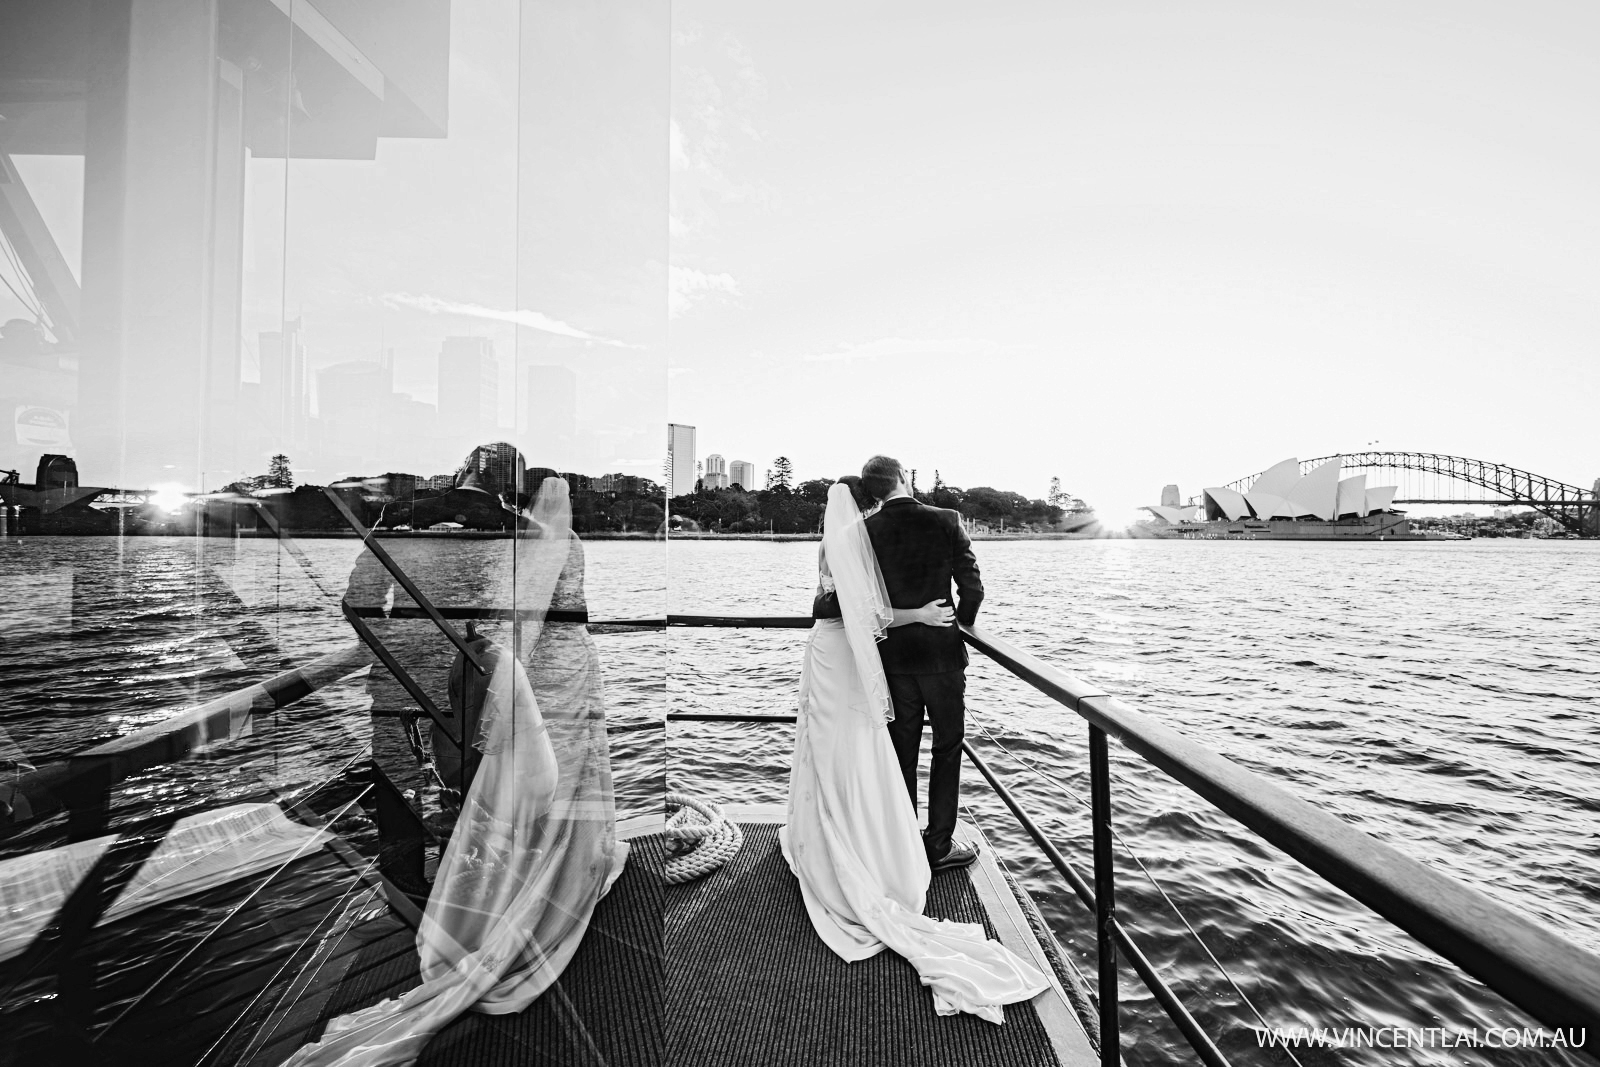 The Sydney Glass Island Wedding Vessel